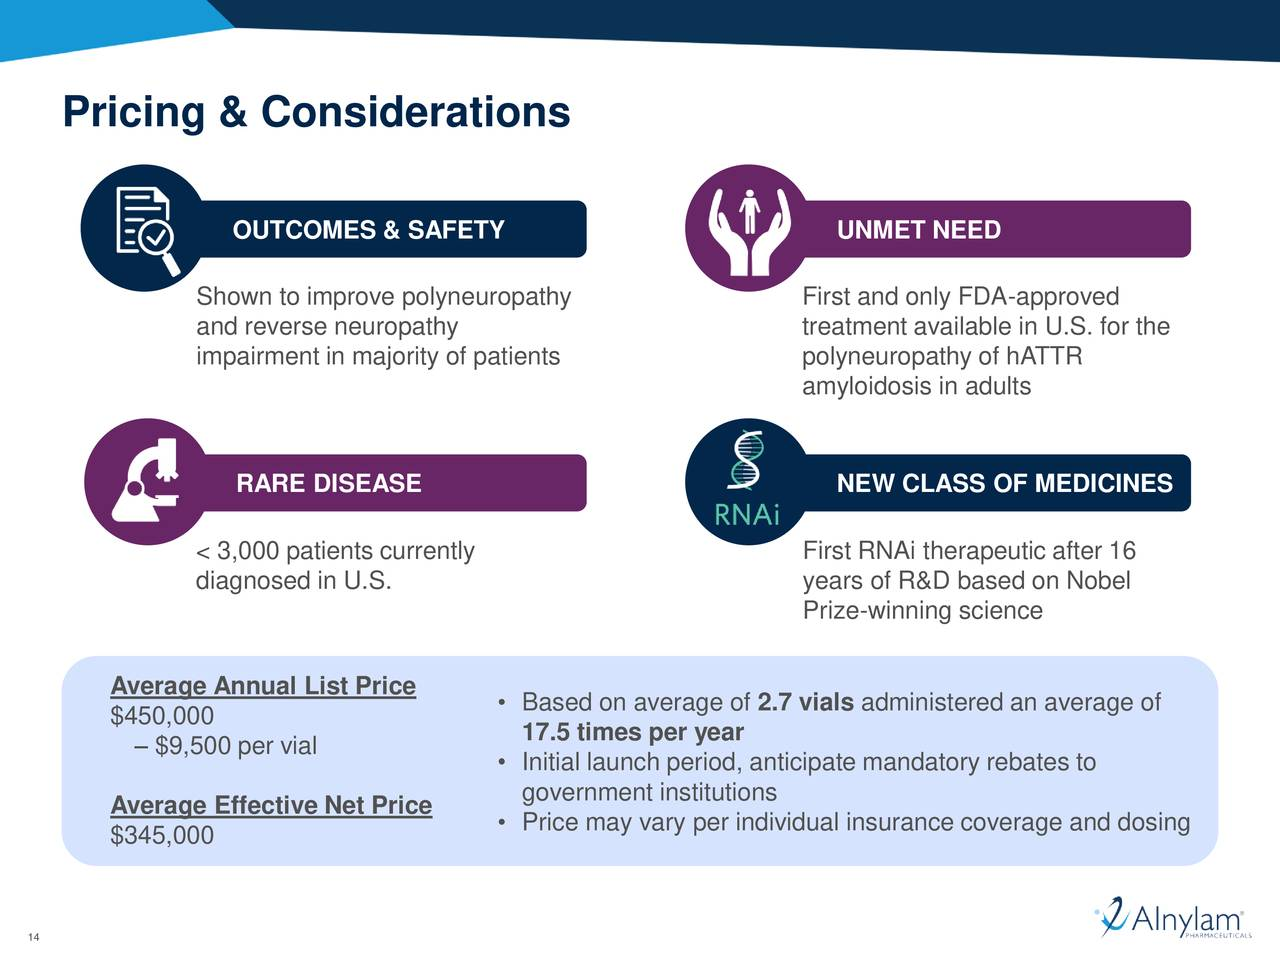 Alnylam Pharmaceutical's (ALNY) Conference Call to Discuss